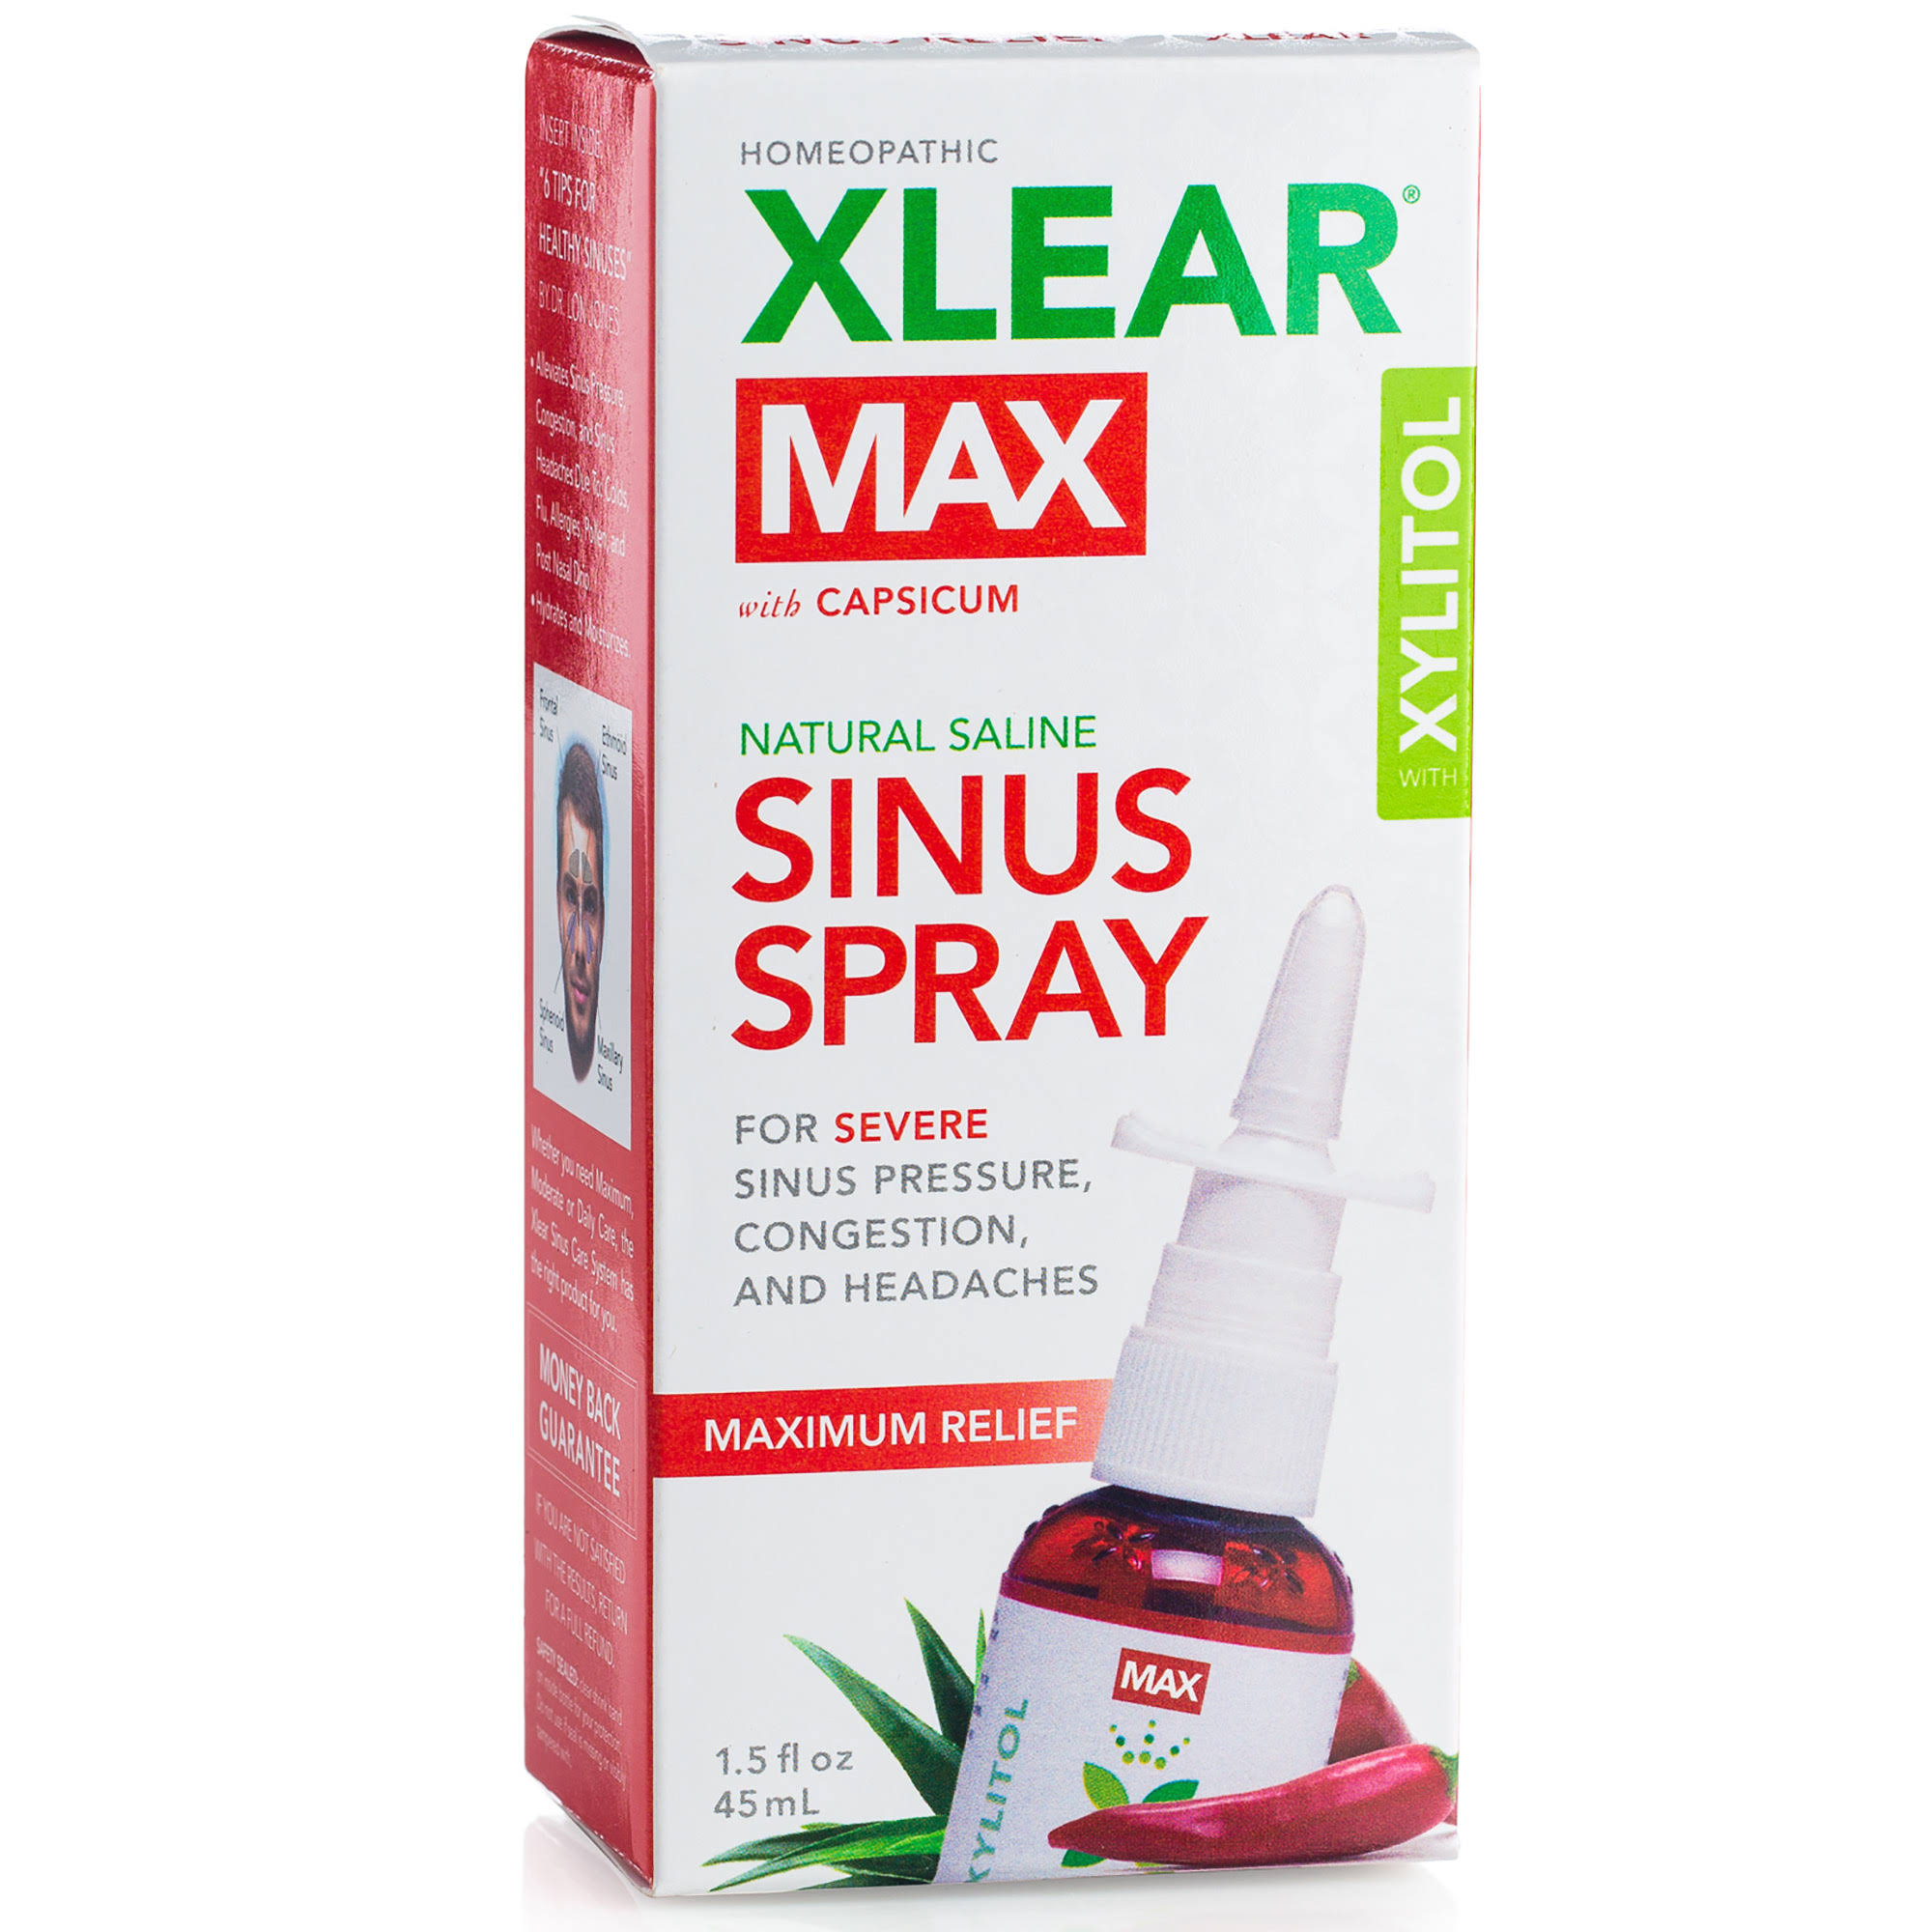 Xlear Max Homeopathic Saline Nasal Spray - 1.5 oz